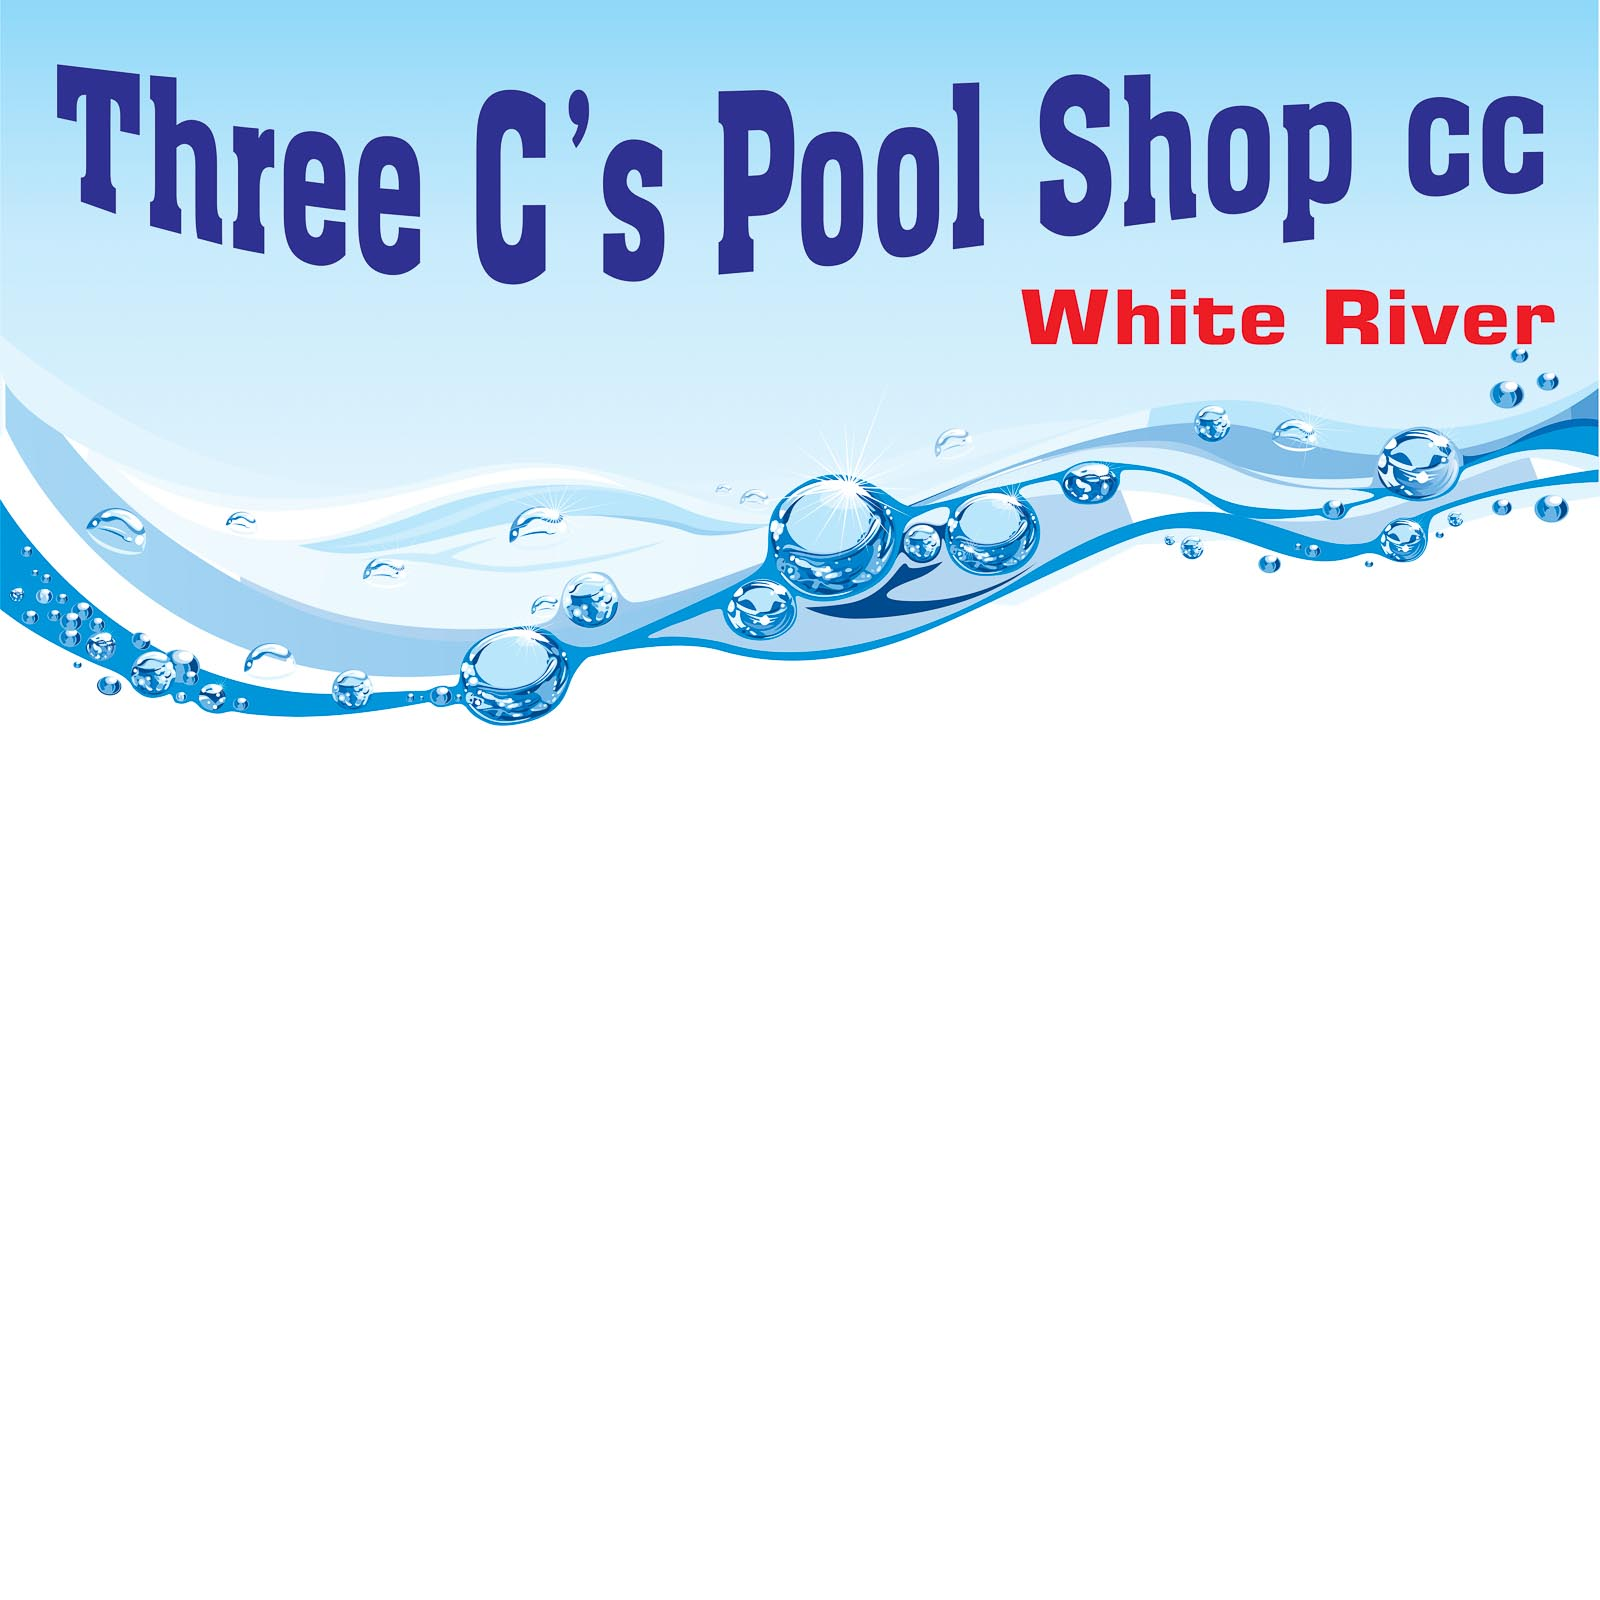 Three C's Pool Shop